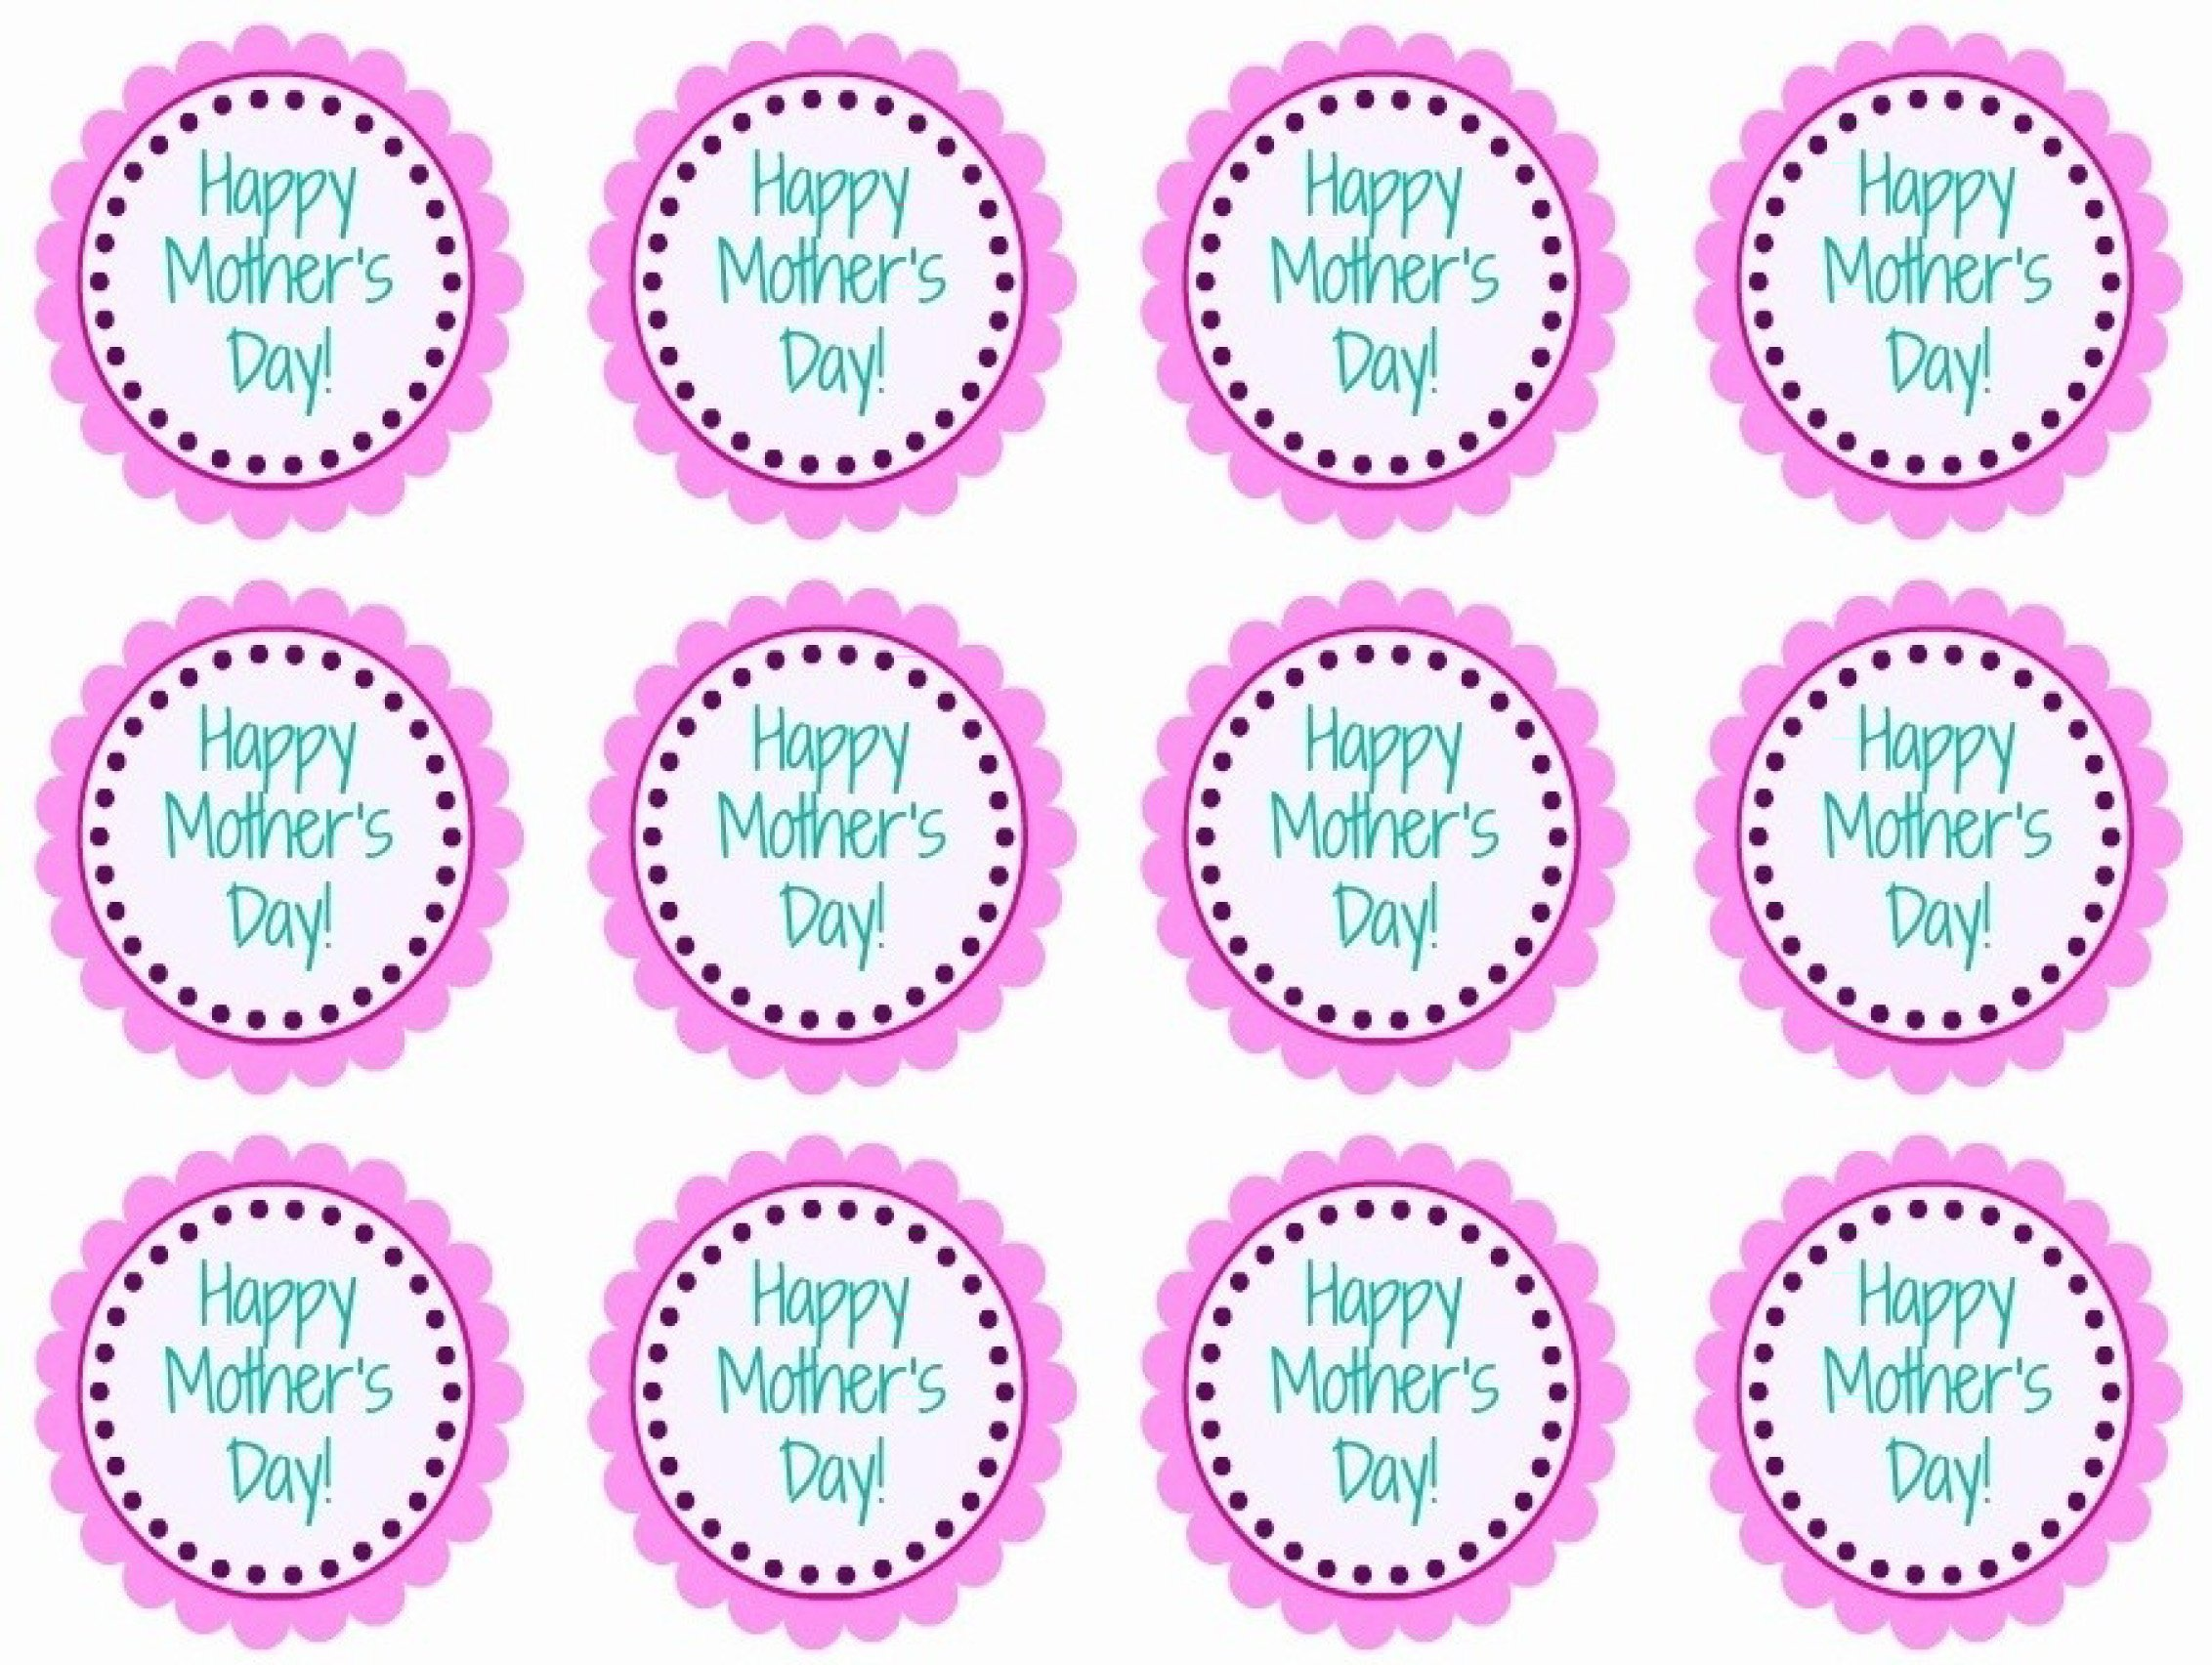 CUPCAKE TOPPERS - For childrens